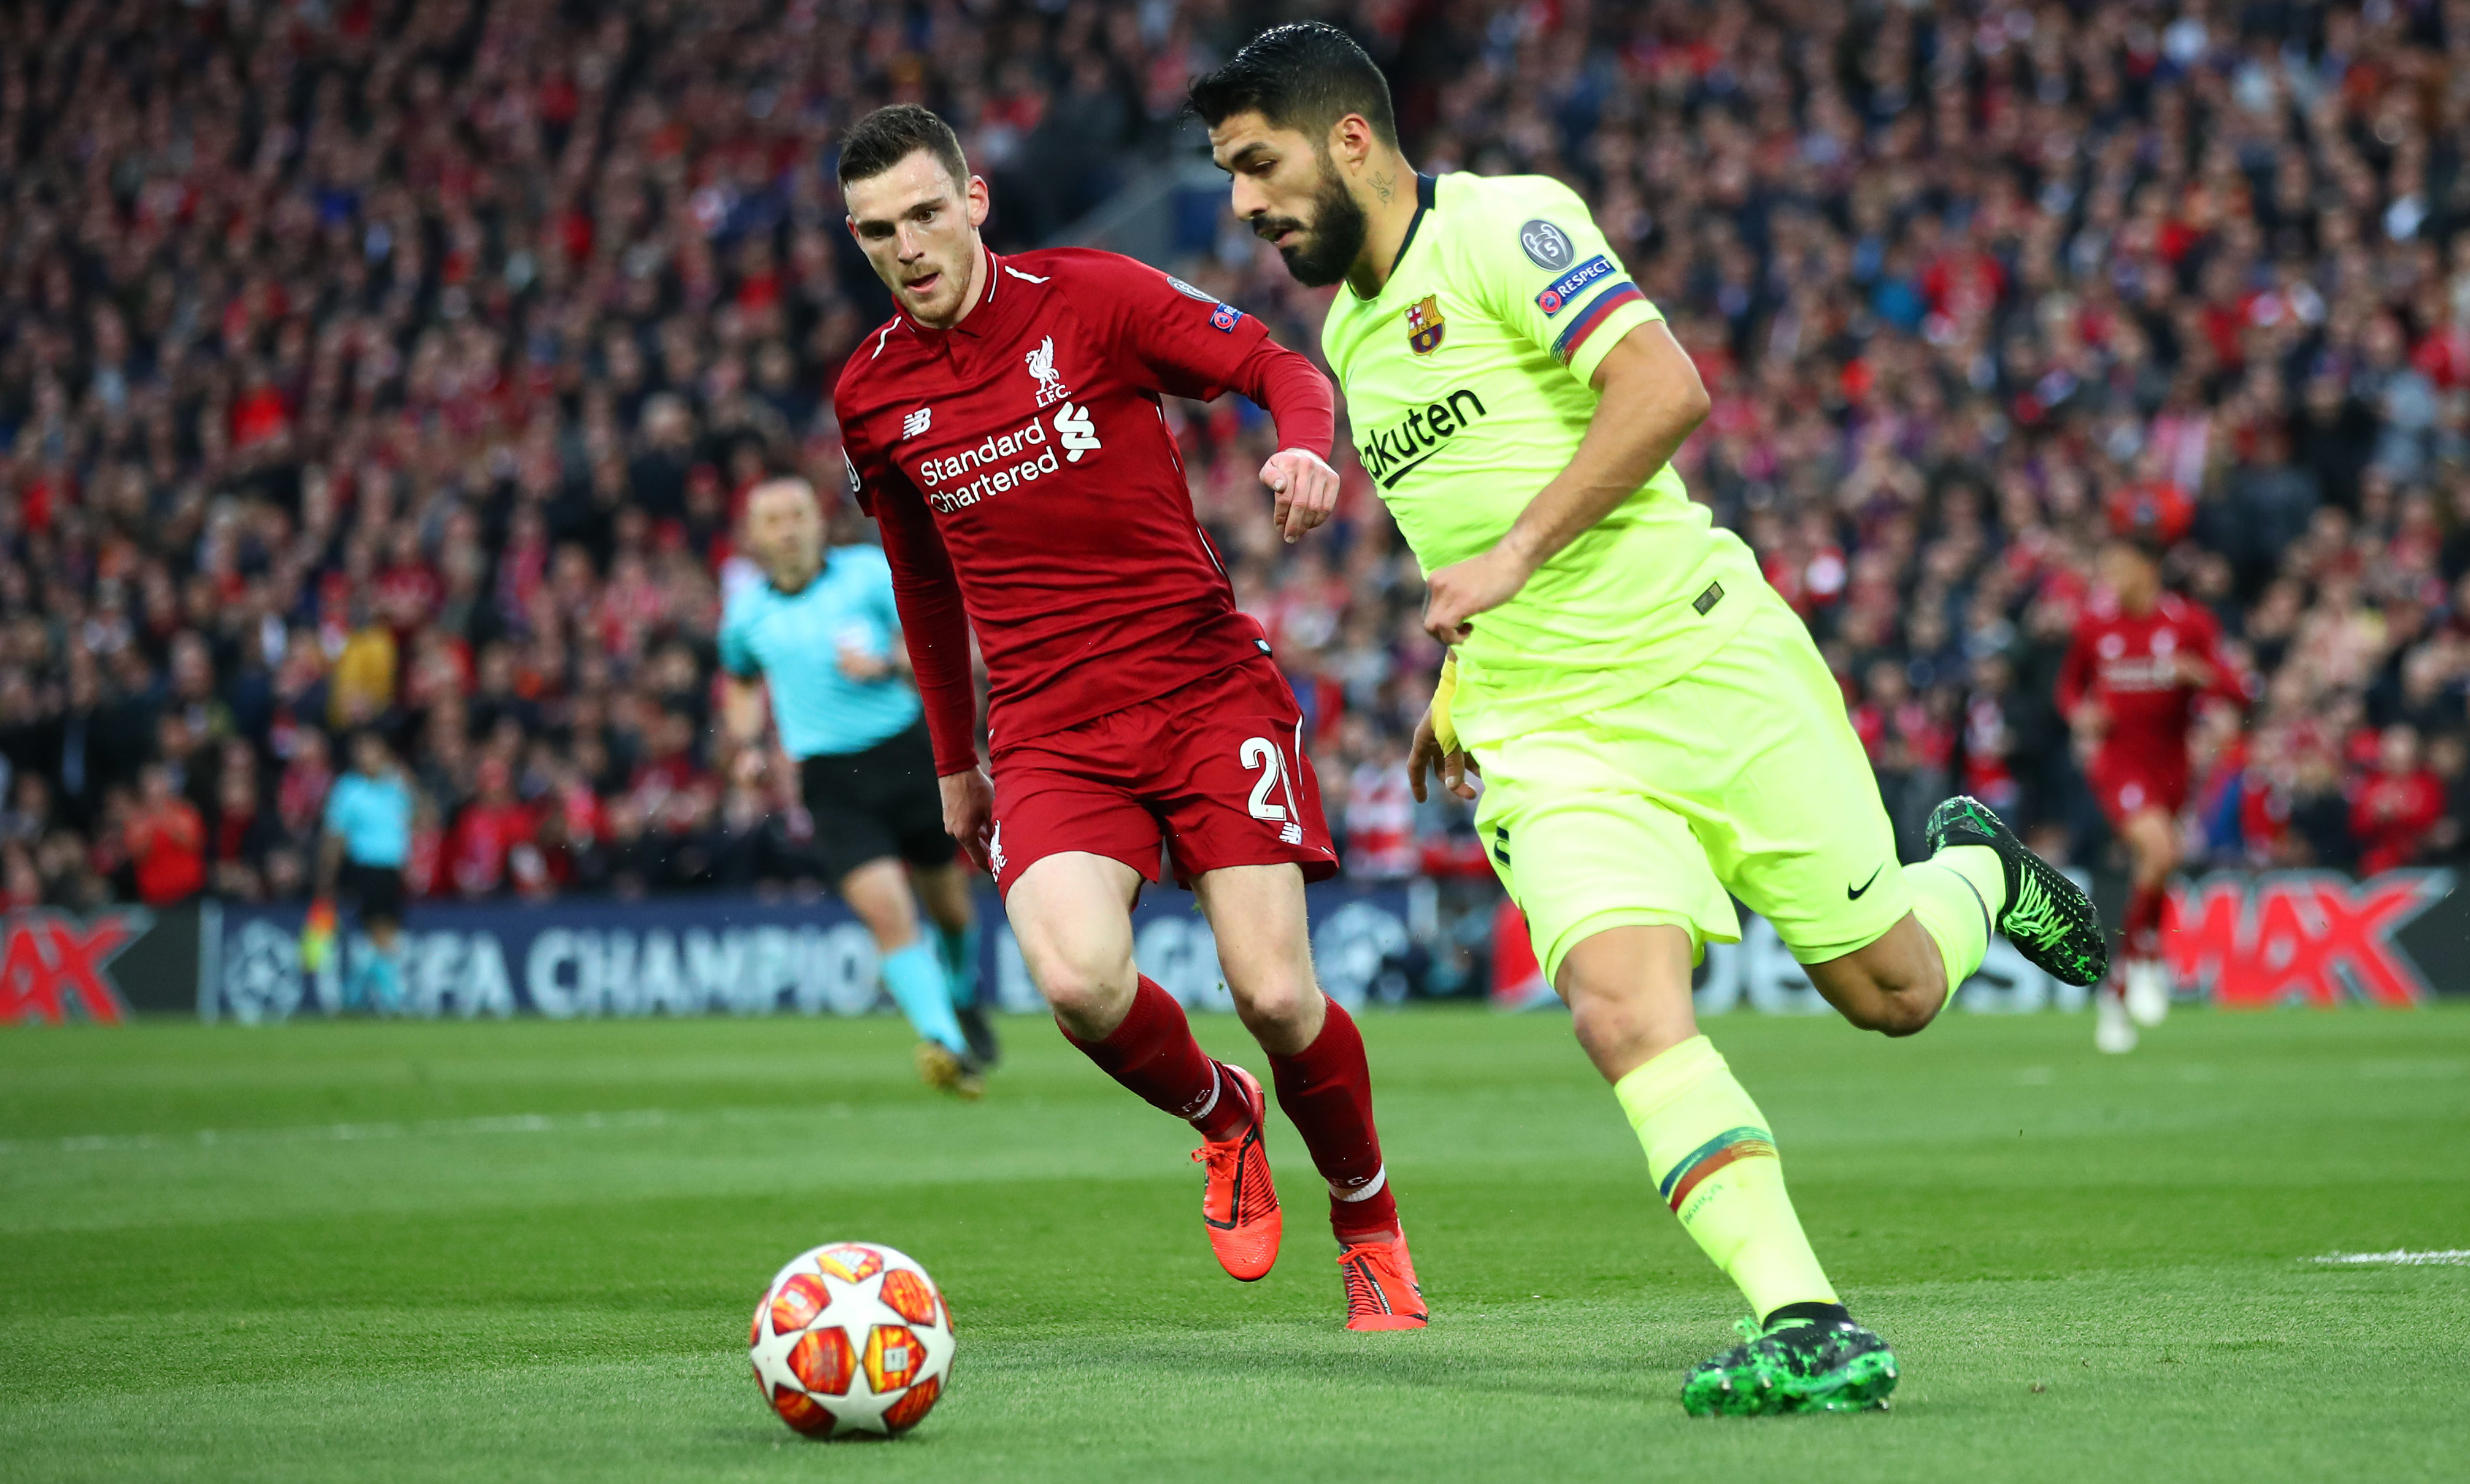 Luis Suarez of Barcelona battles for possession with Andy Robertson of Liverpool during the UEFA Champions League Semi Final second leg match between Liverpool and Barcelona at Anfield.